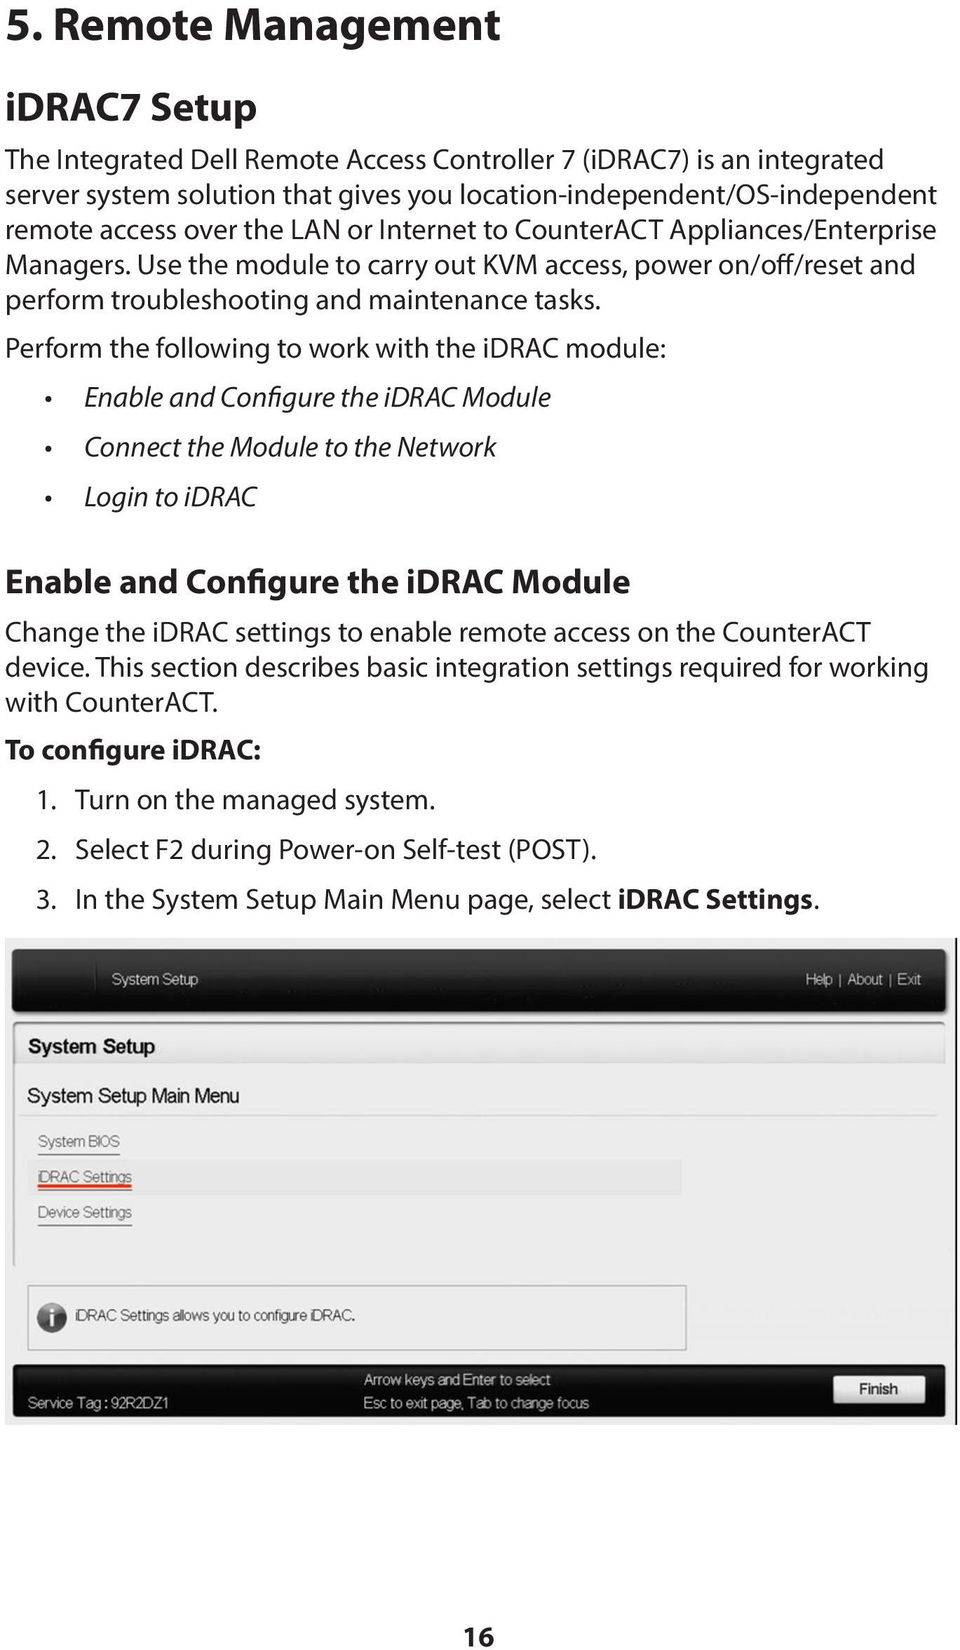 Perform the following to work with the idrac module: Enable and Configure the idrac Module Connect the Module to the Network Login to idrac Enable and Configure the idrac Module Change the idrac